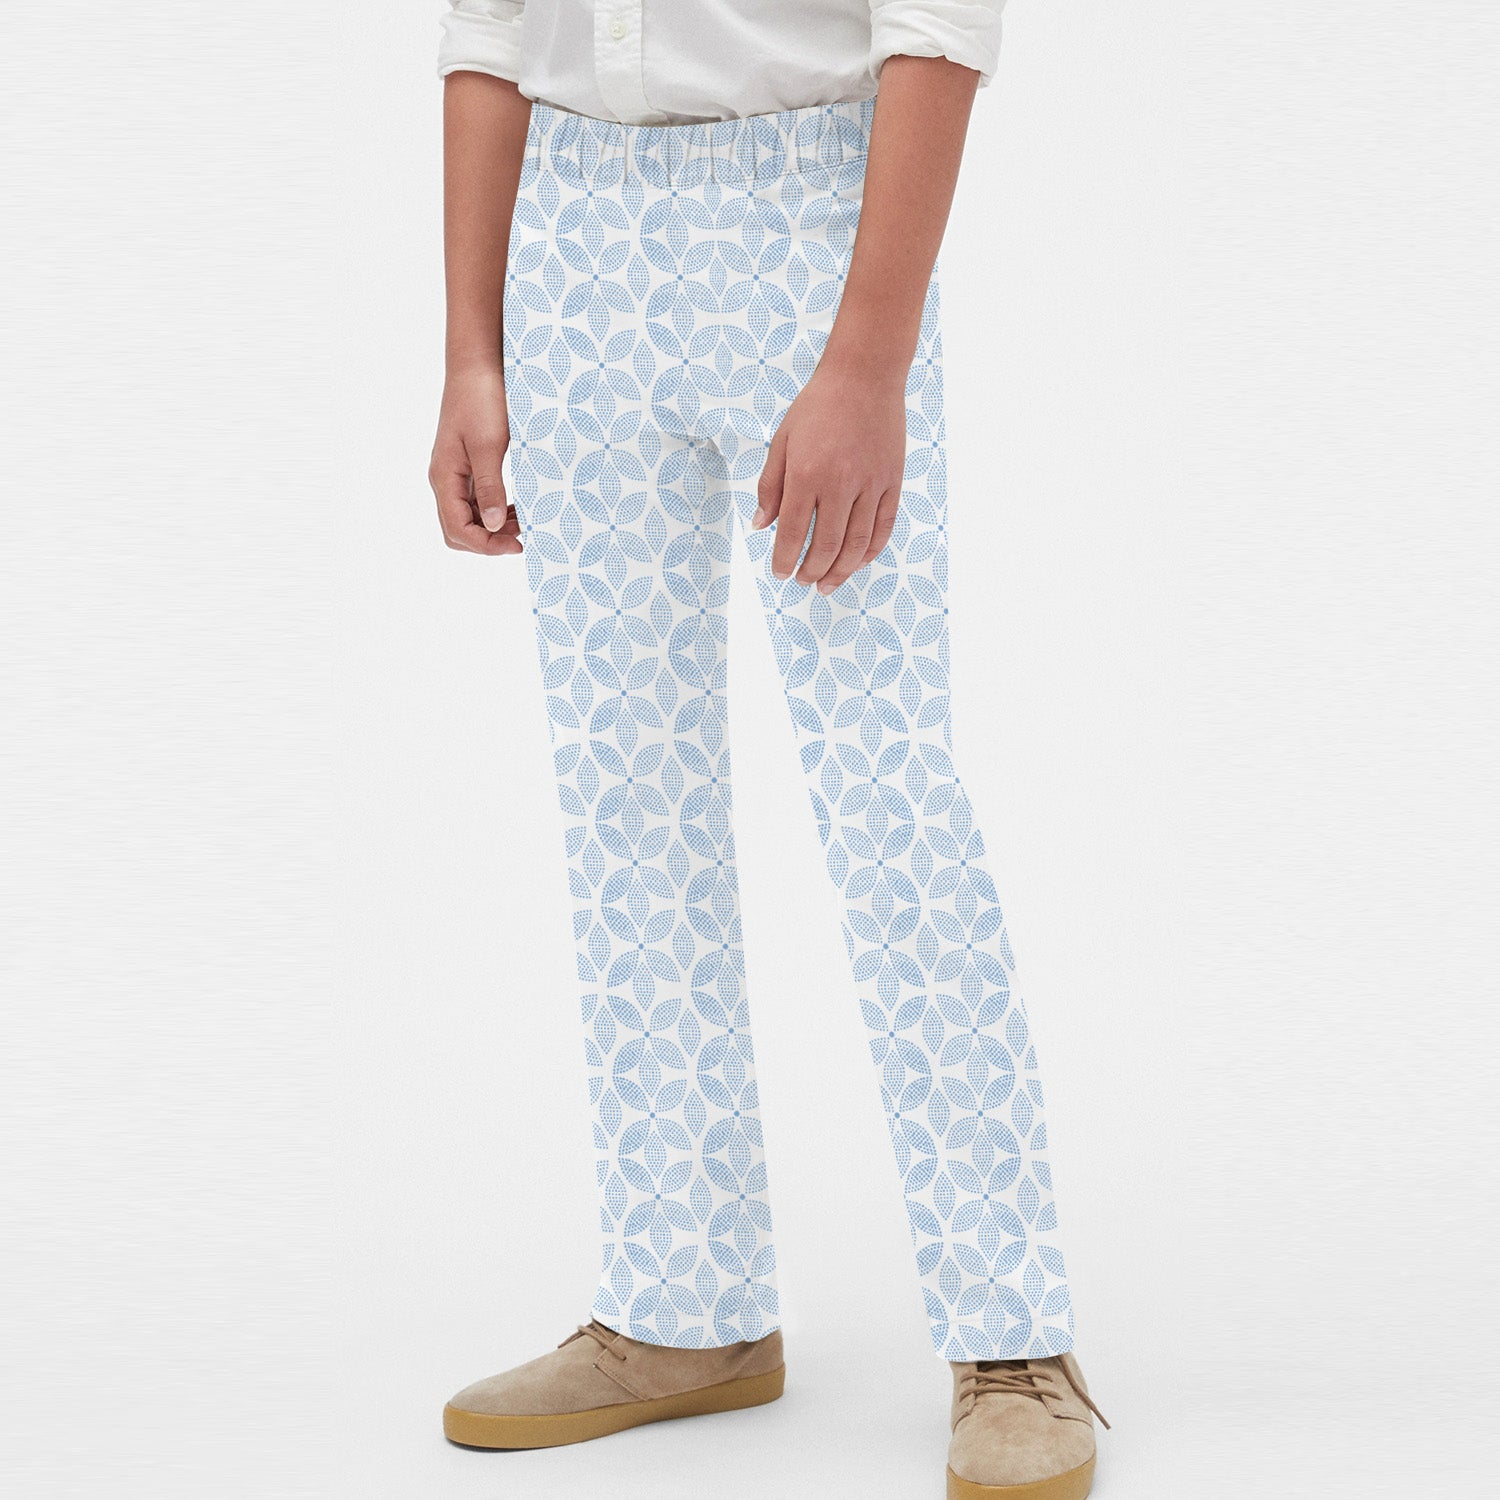 Zara Boy Slim Fit Flannel Trouser For Kids-White with Floral-BE9842